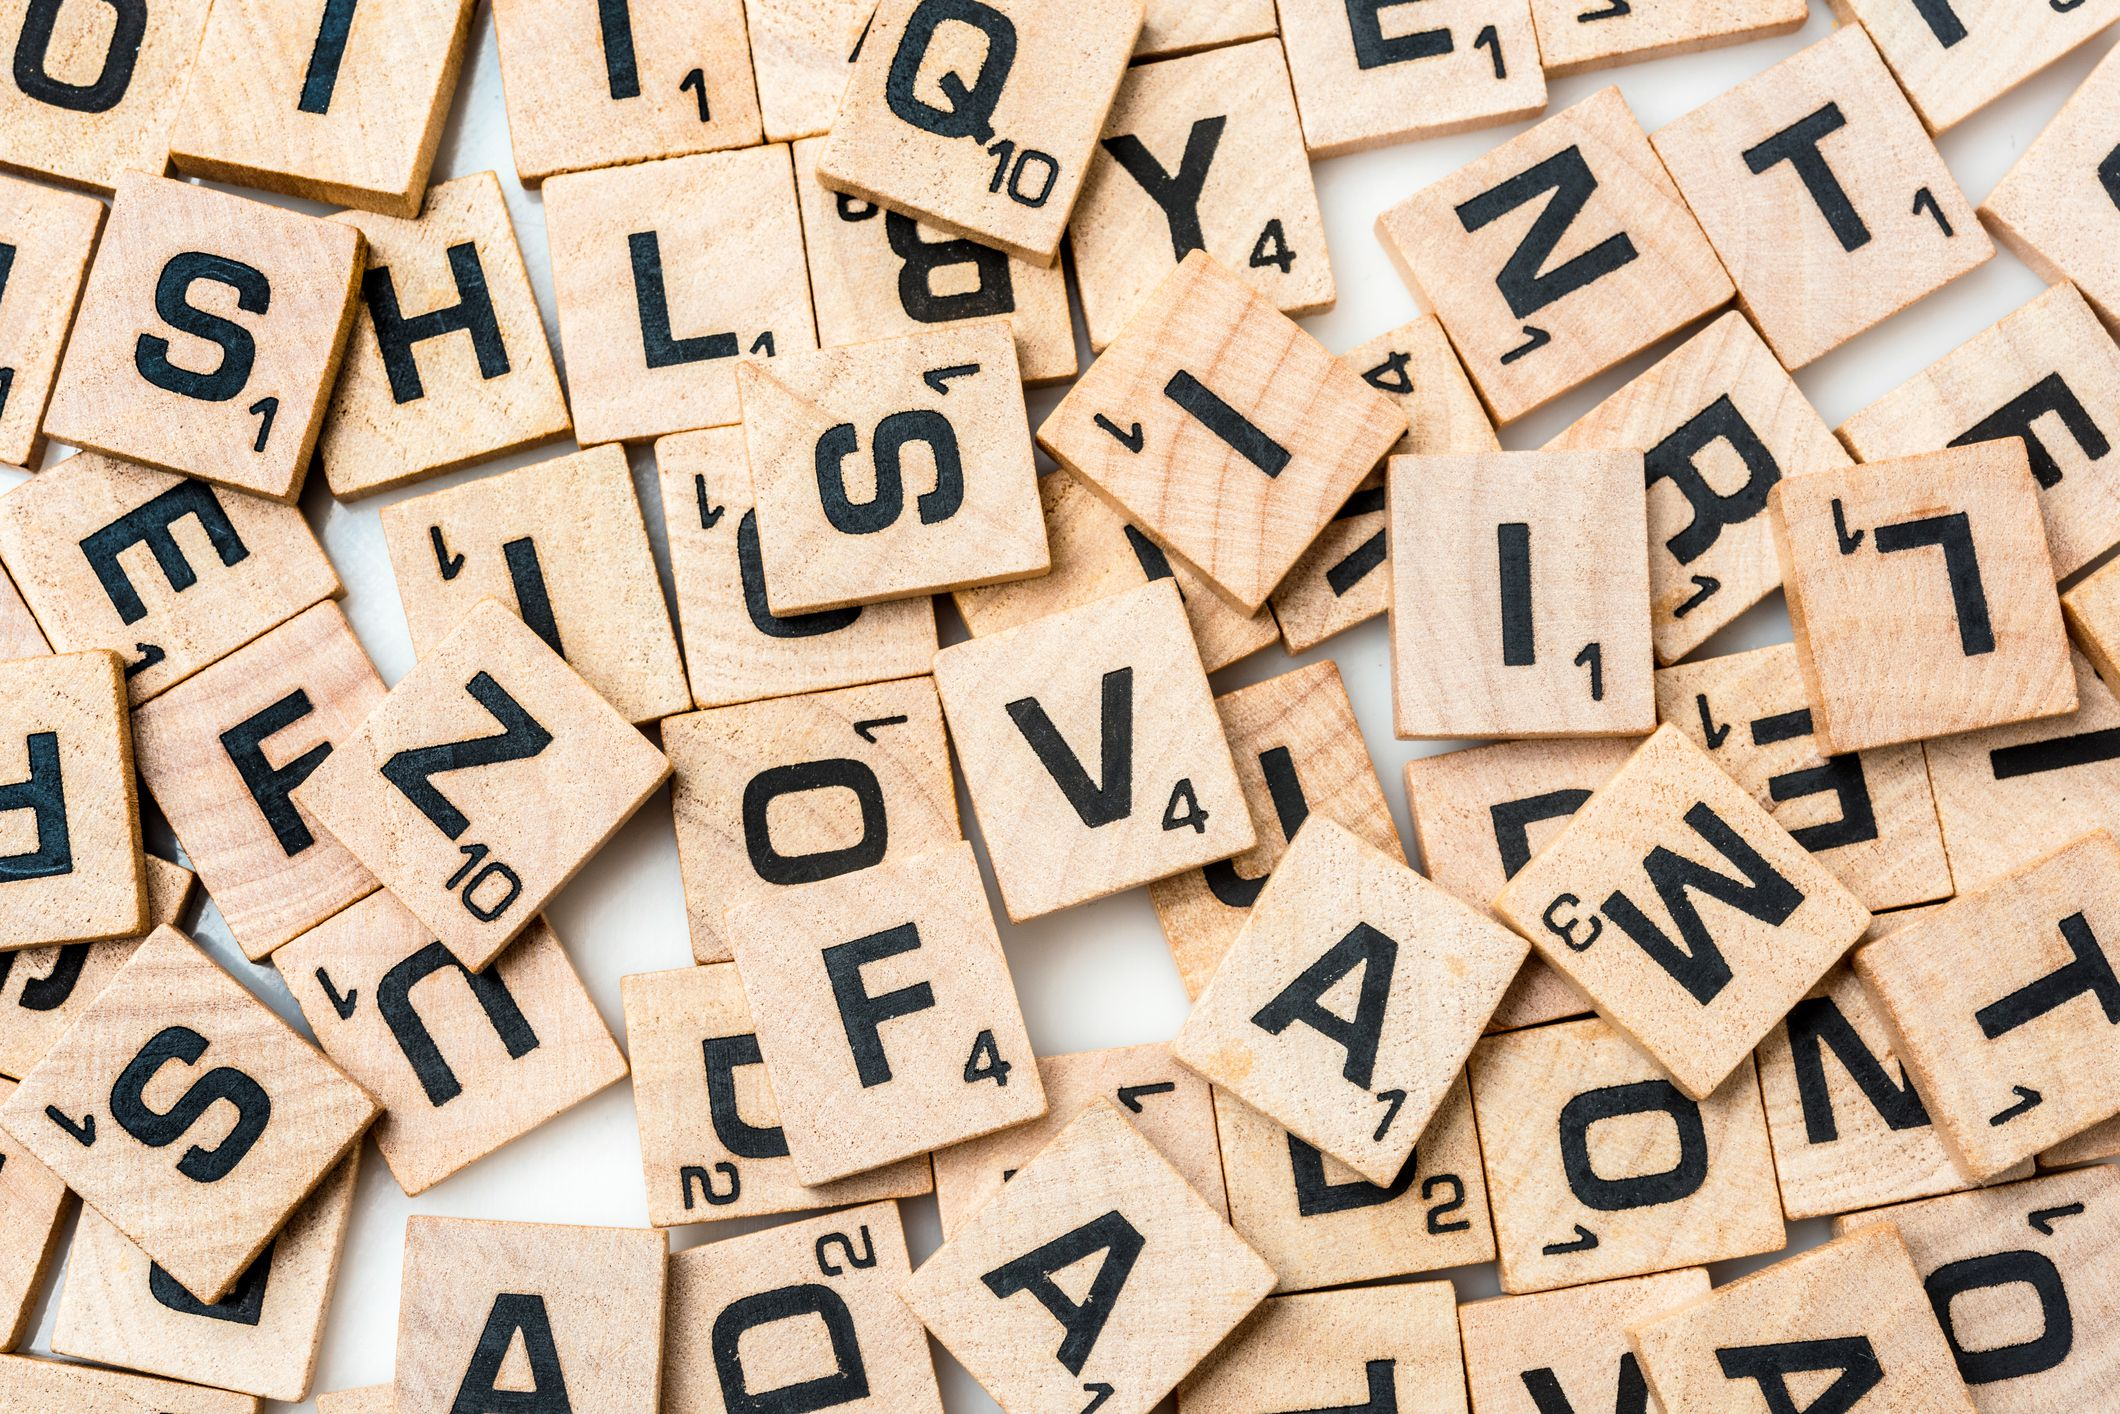 Letter Words That End With Ca